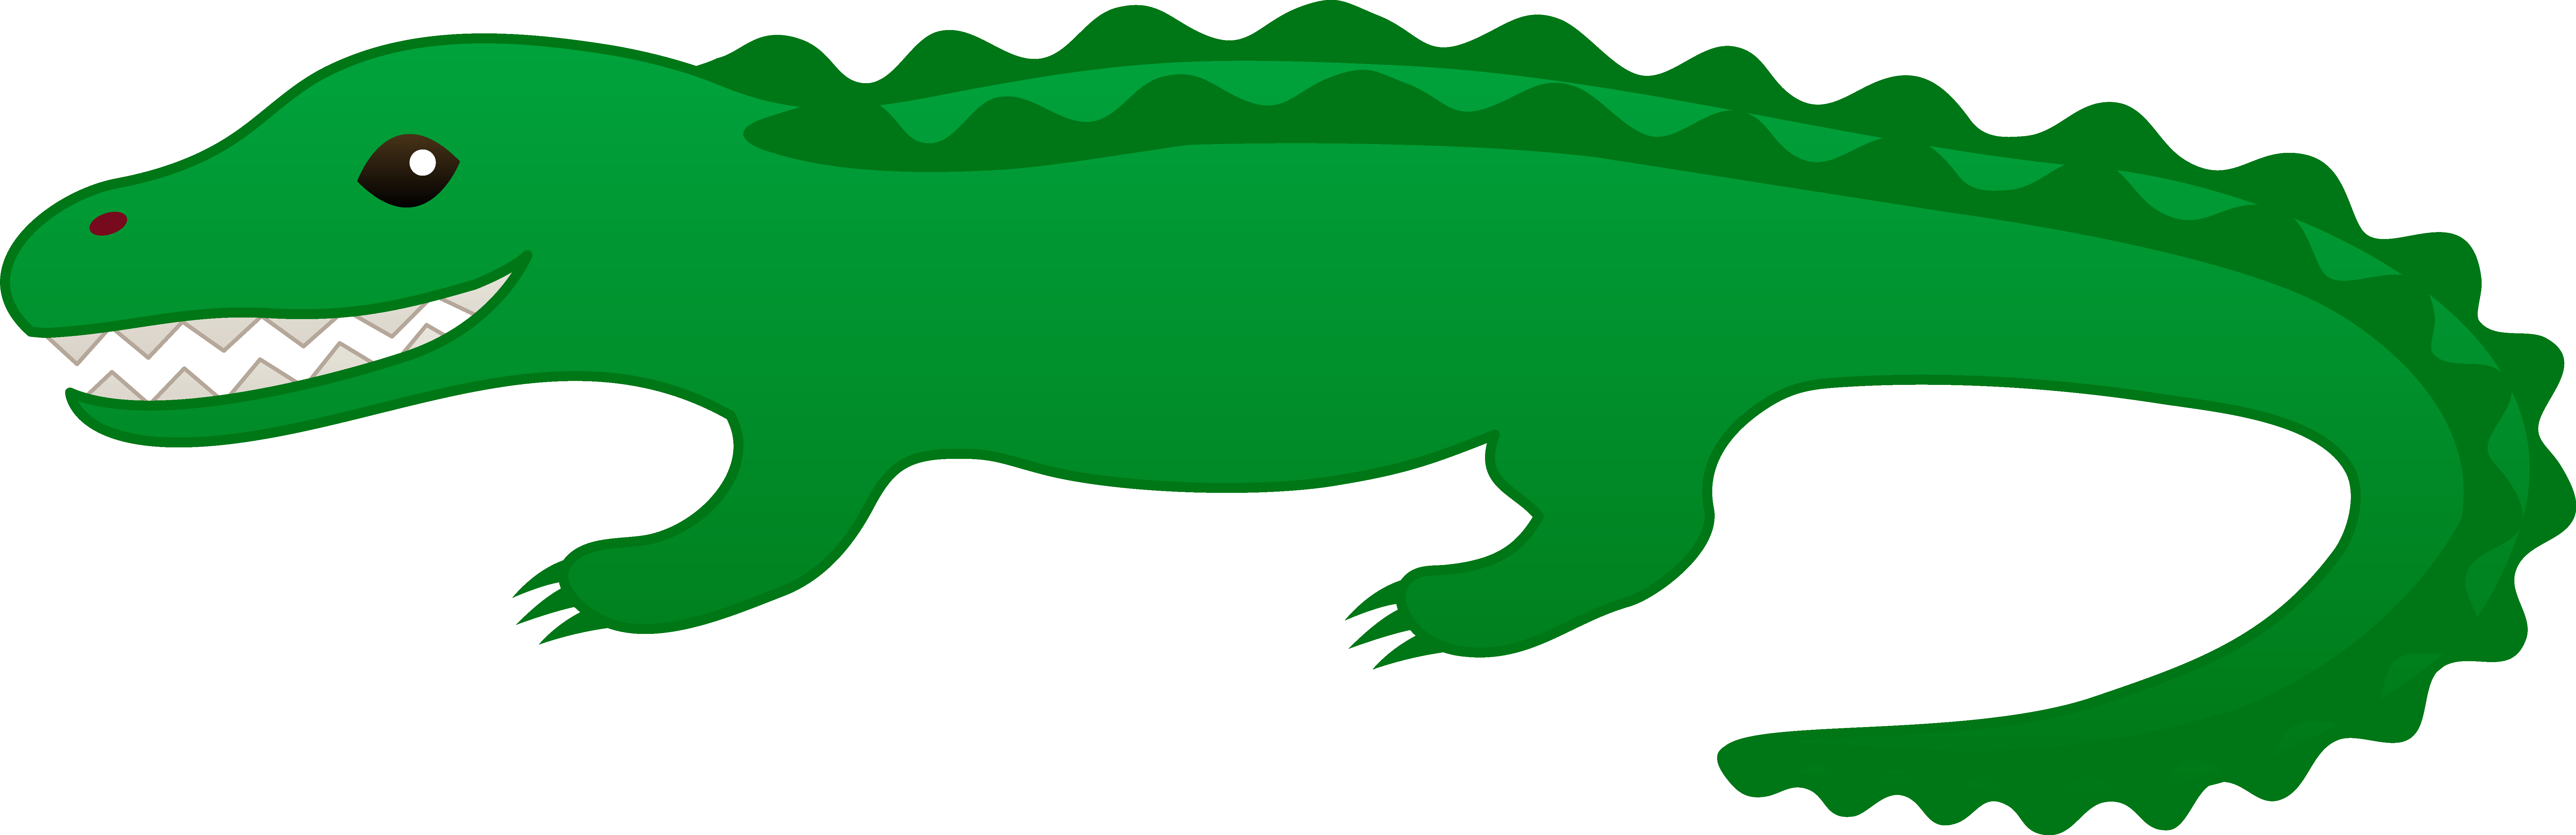 8491x2753 Florida Gators Clipart